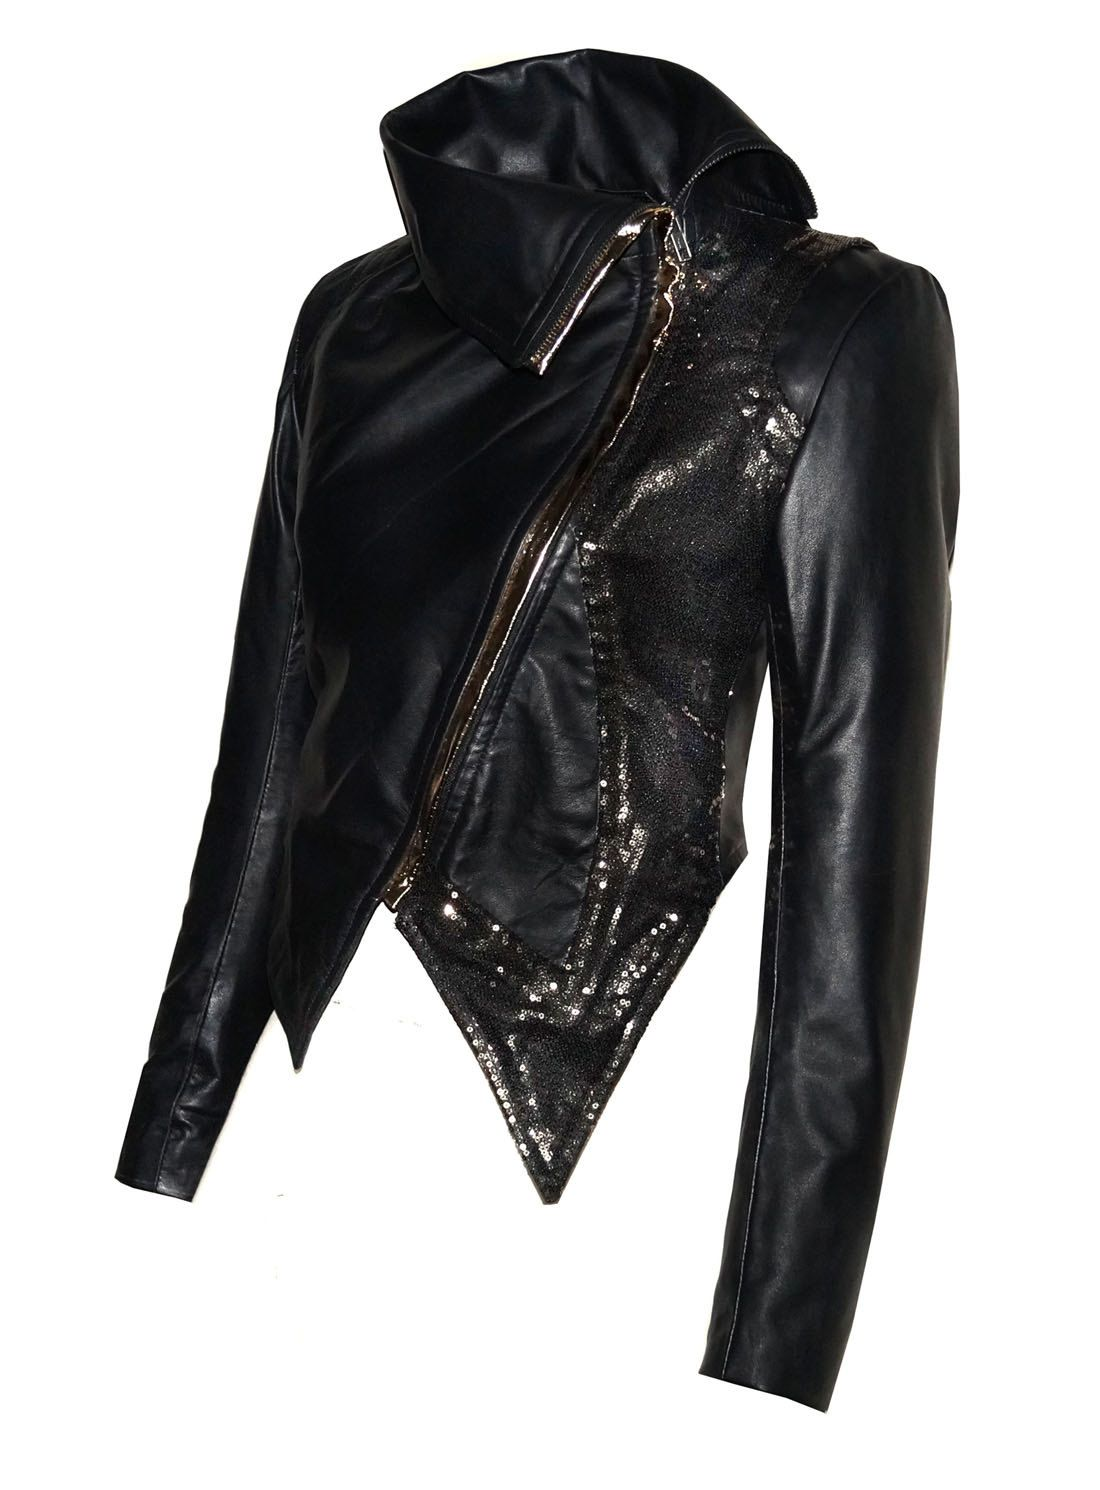 Hand Made Women Leather Asymmetrical Soft Leather Jacket With High Neck Collars Sequence Designer Front Leather Women Leather Jackets Women Leather Jacket [ 1490 x 1100 Pixel ]